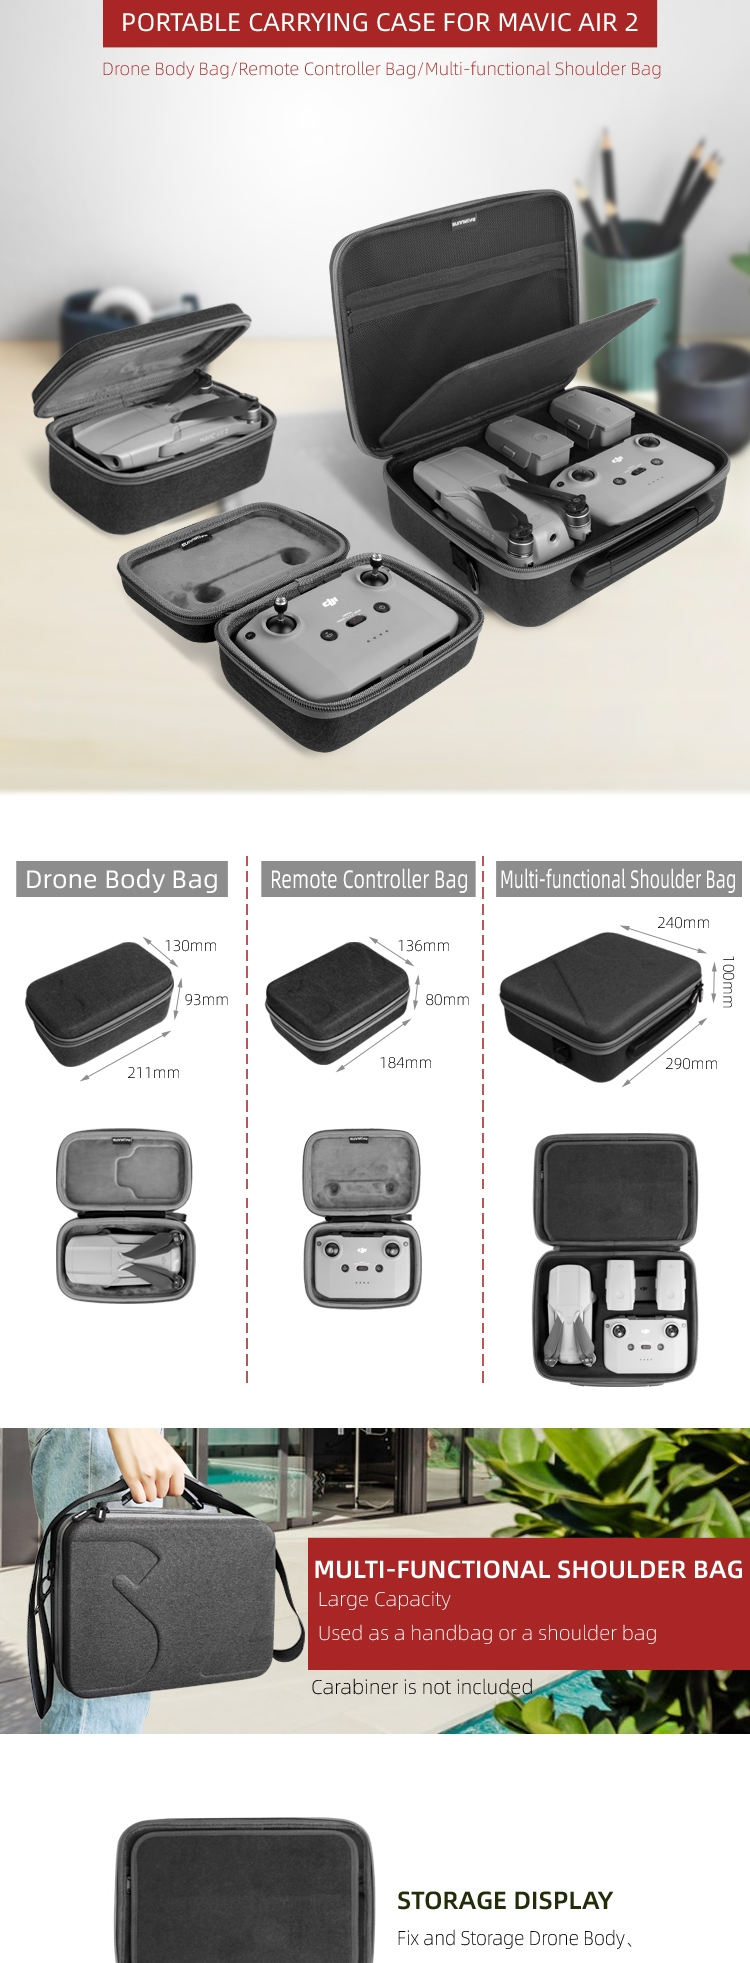 Sunnylife Portable Waterproof Storage Shoulder Bag Carrying Case Box Suitcase for DJI Mavic Air 2 RC Drone